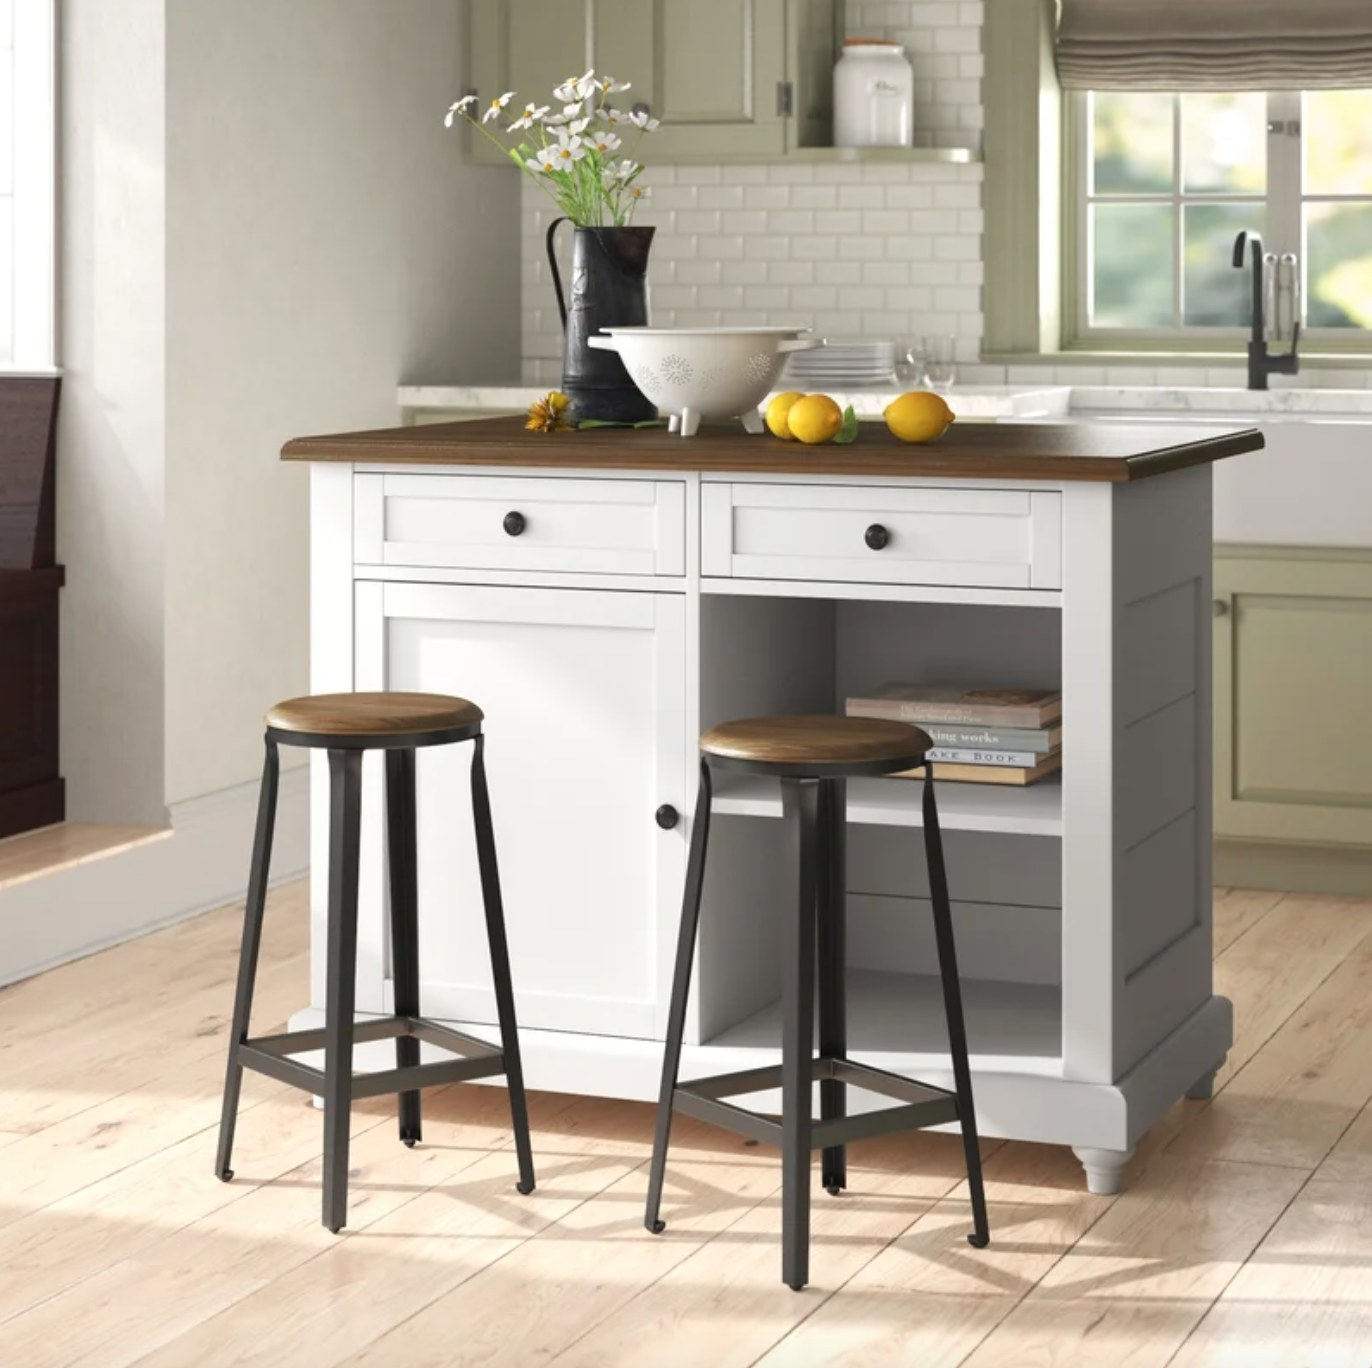 The kitchen island set in white with two stools with black iron legs